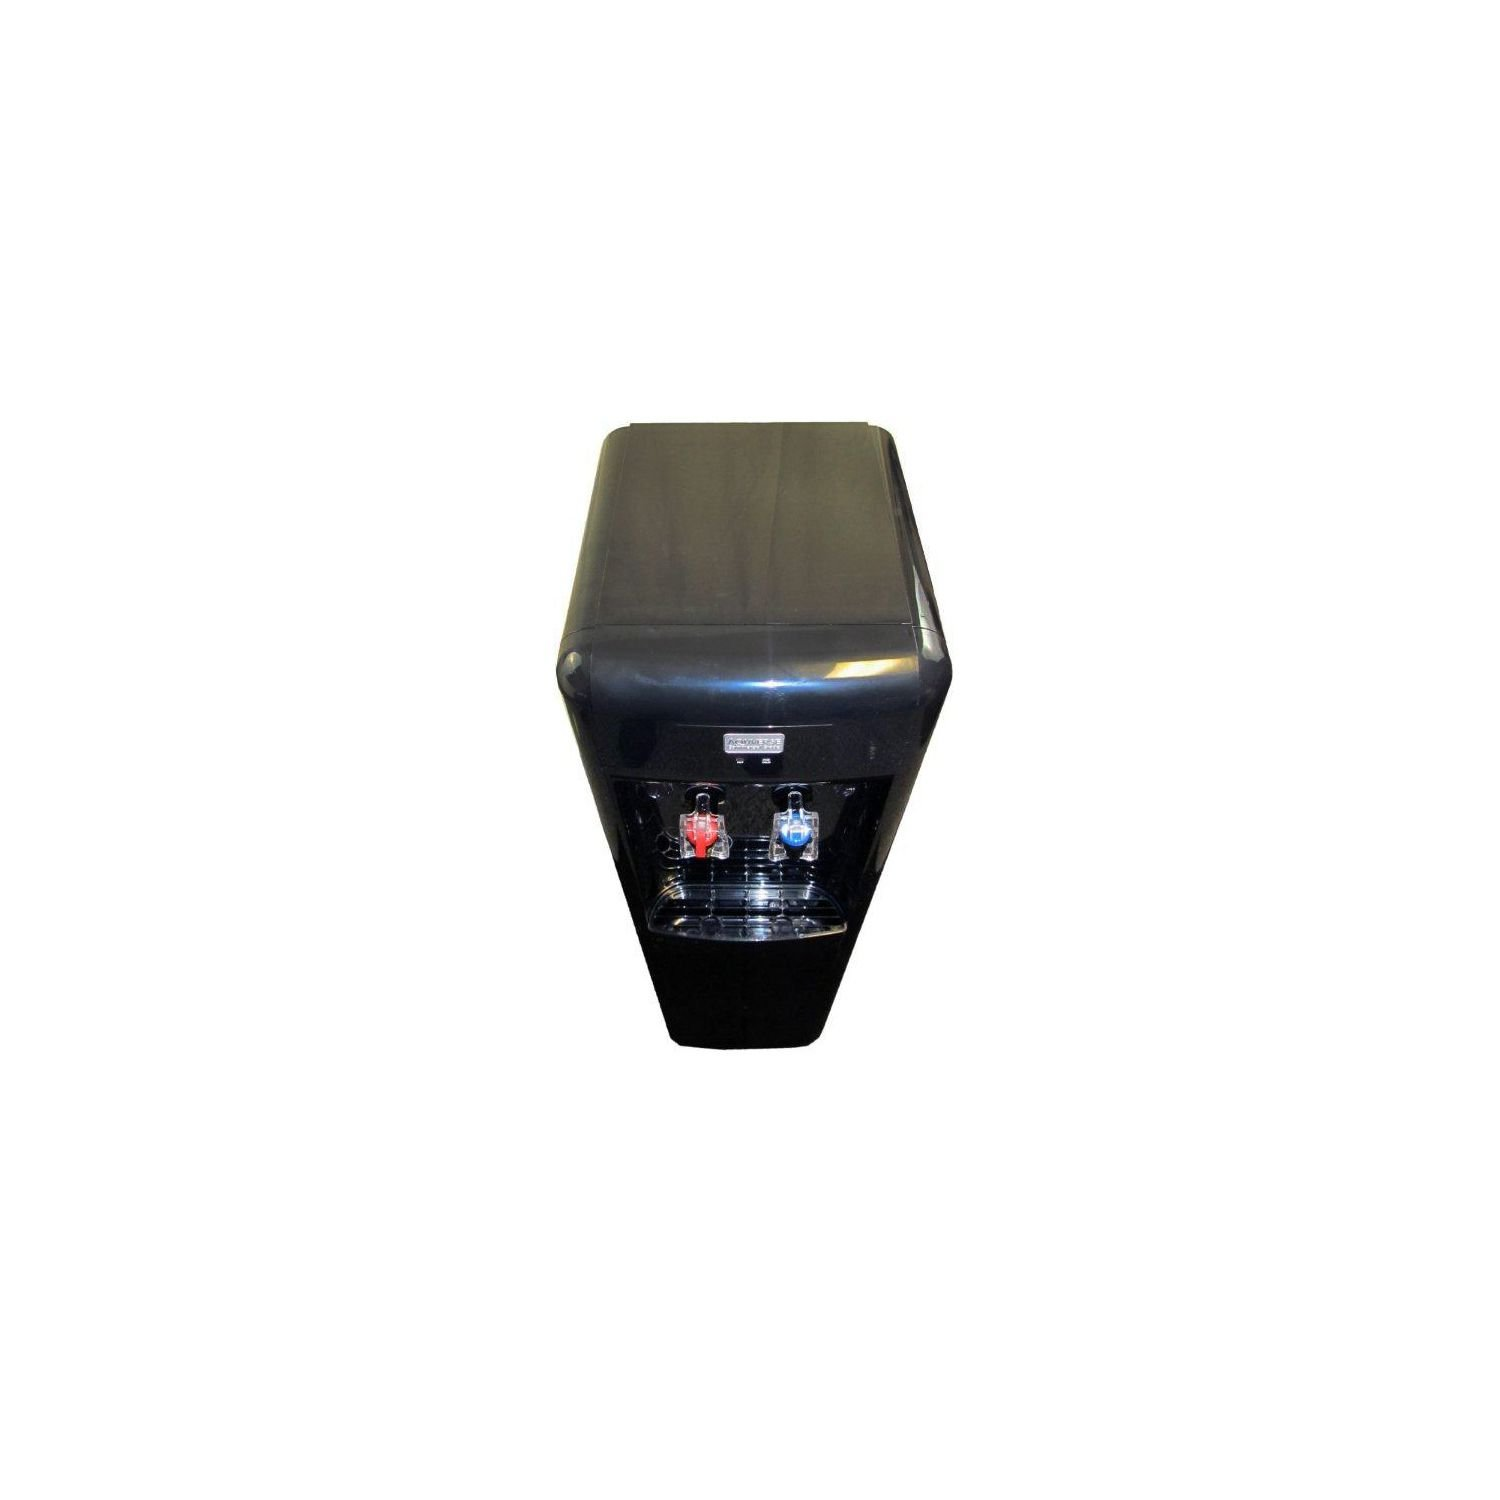 Aquverse 5PH-Bottleless Commercial Grade Hot & Cold Water Dispenser by Aquverse (Image #2)